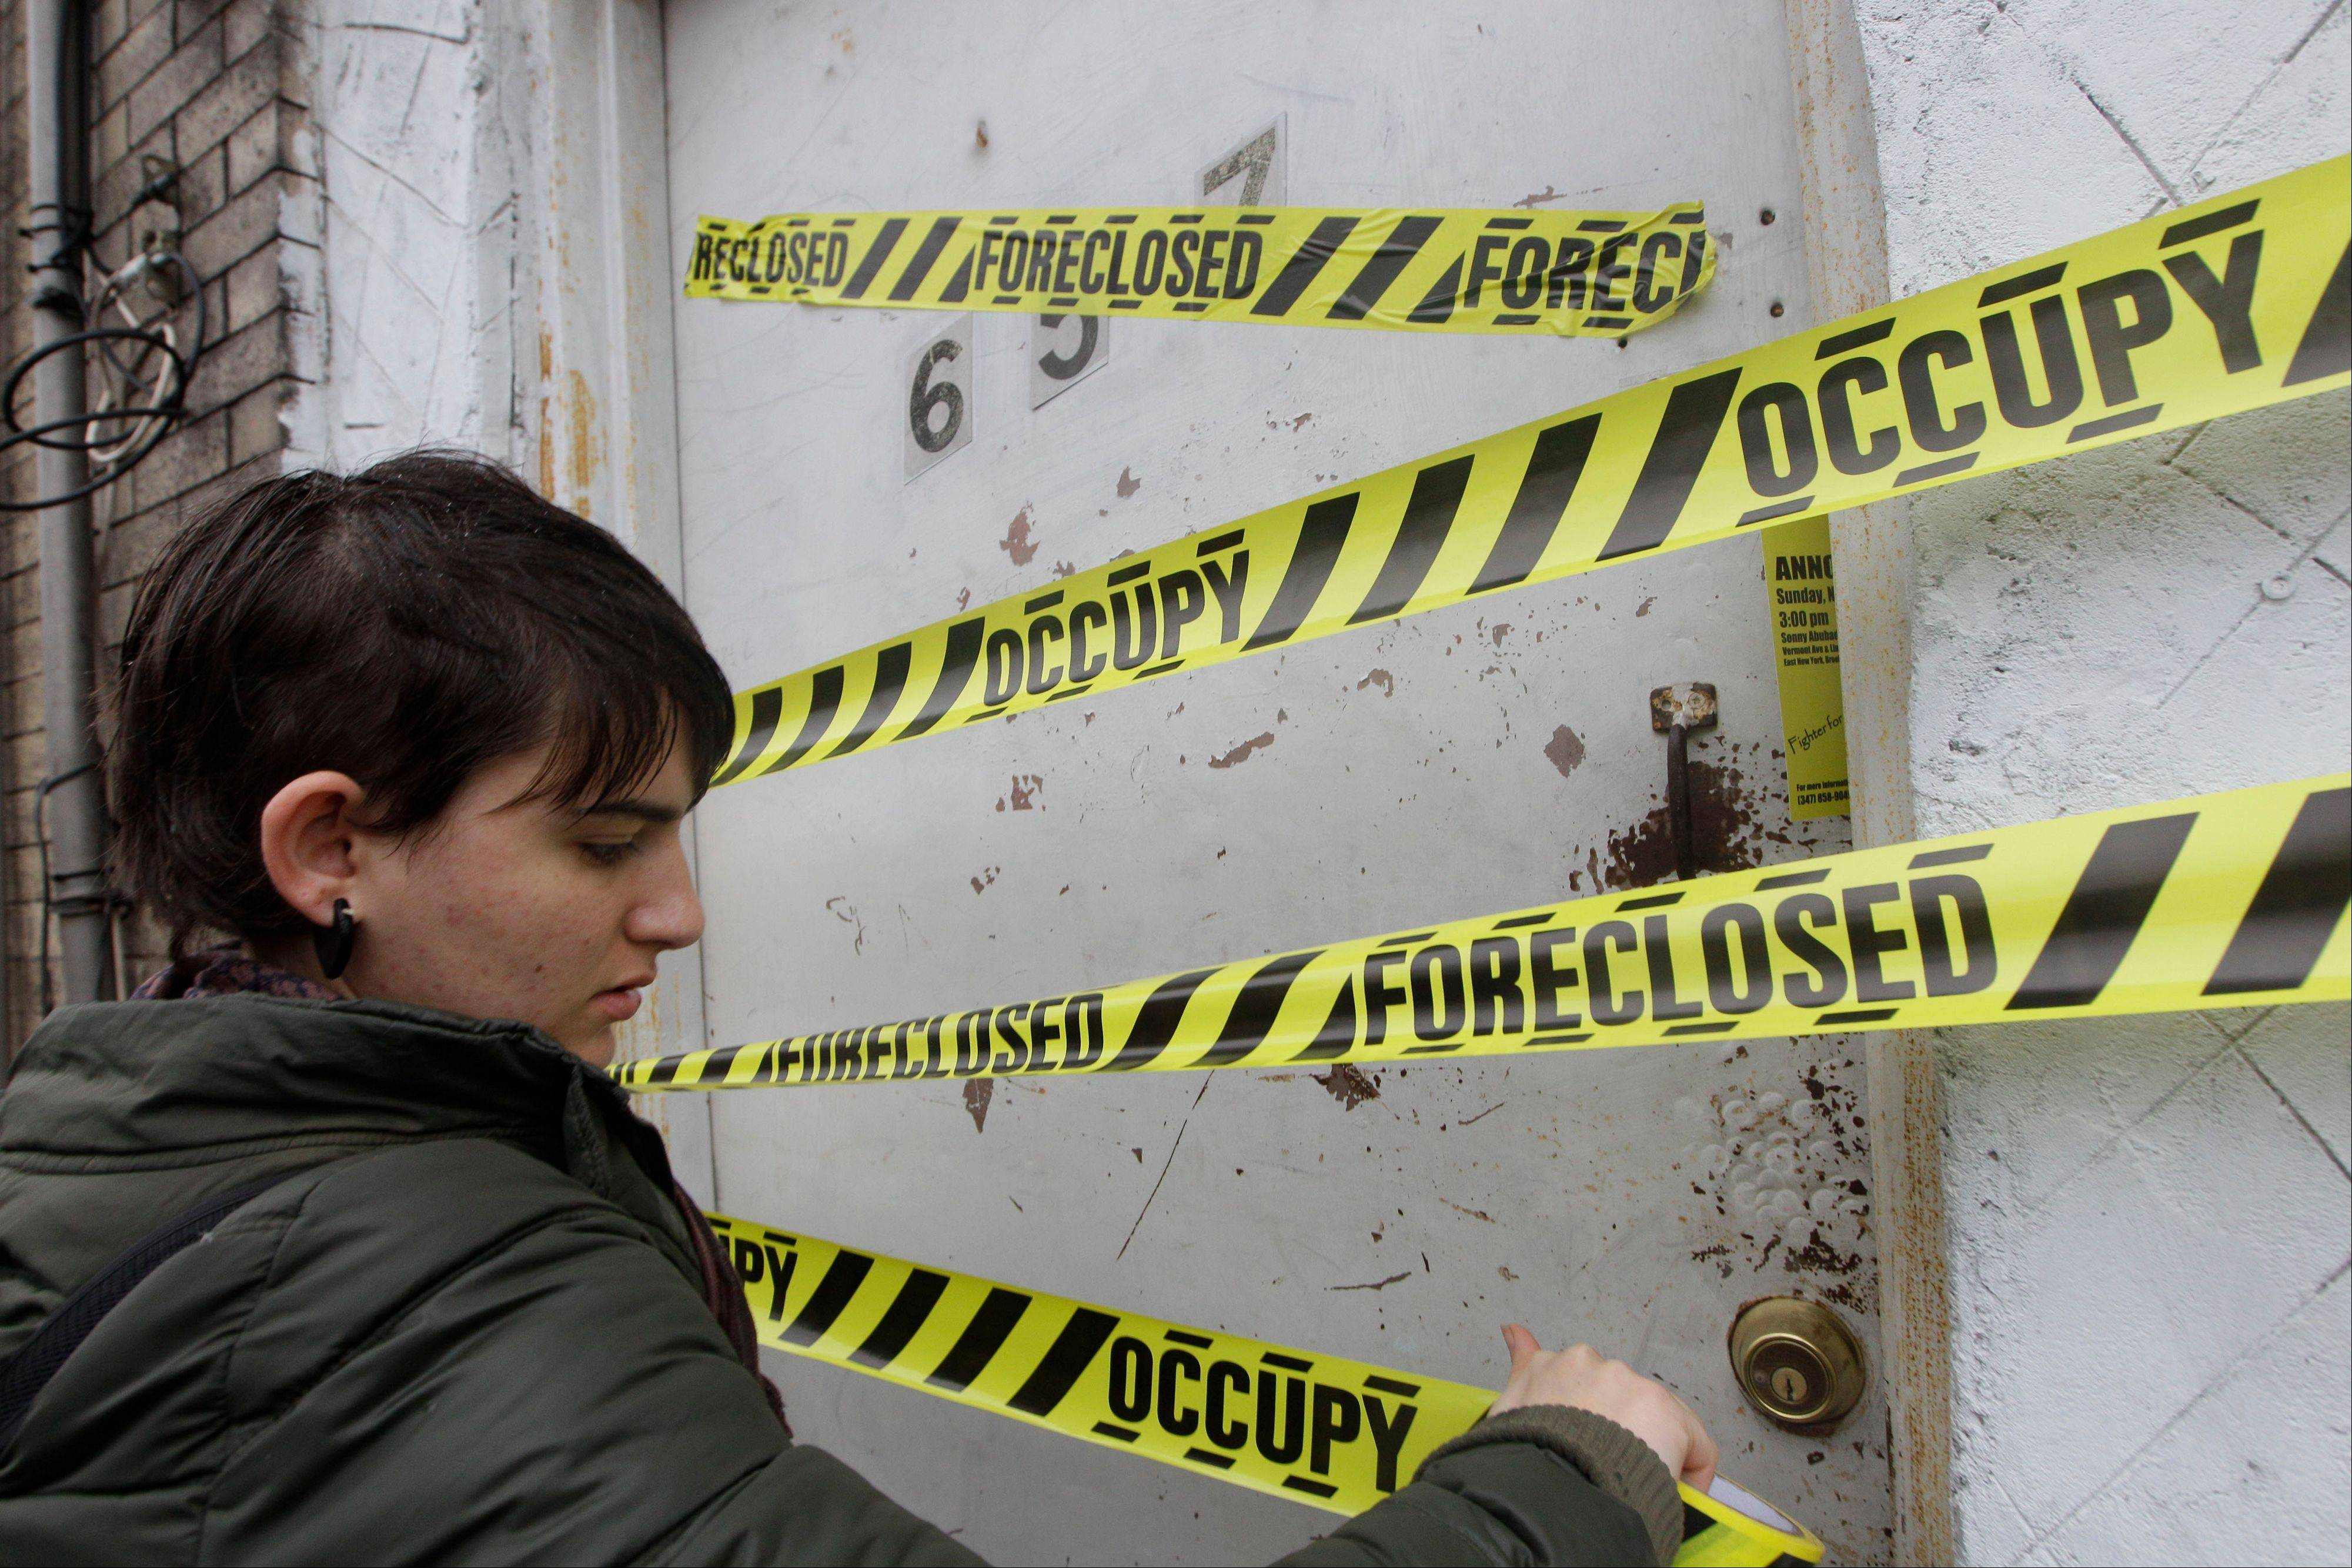 An Occupy Wall Street activist places tape on a boarded up house during a tour of foreclosed homes in the East New York neighborhood of the Brooklyn borough of New York.